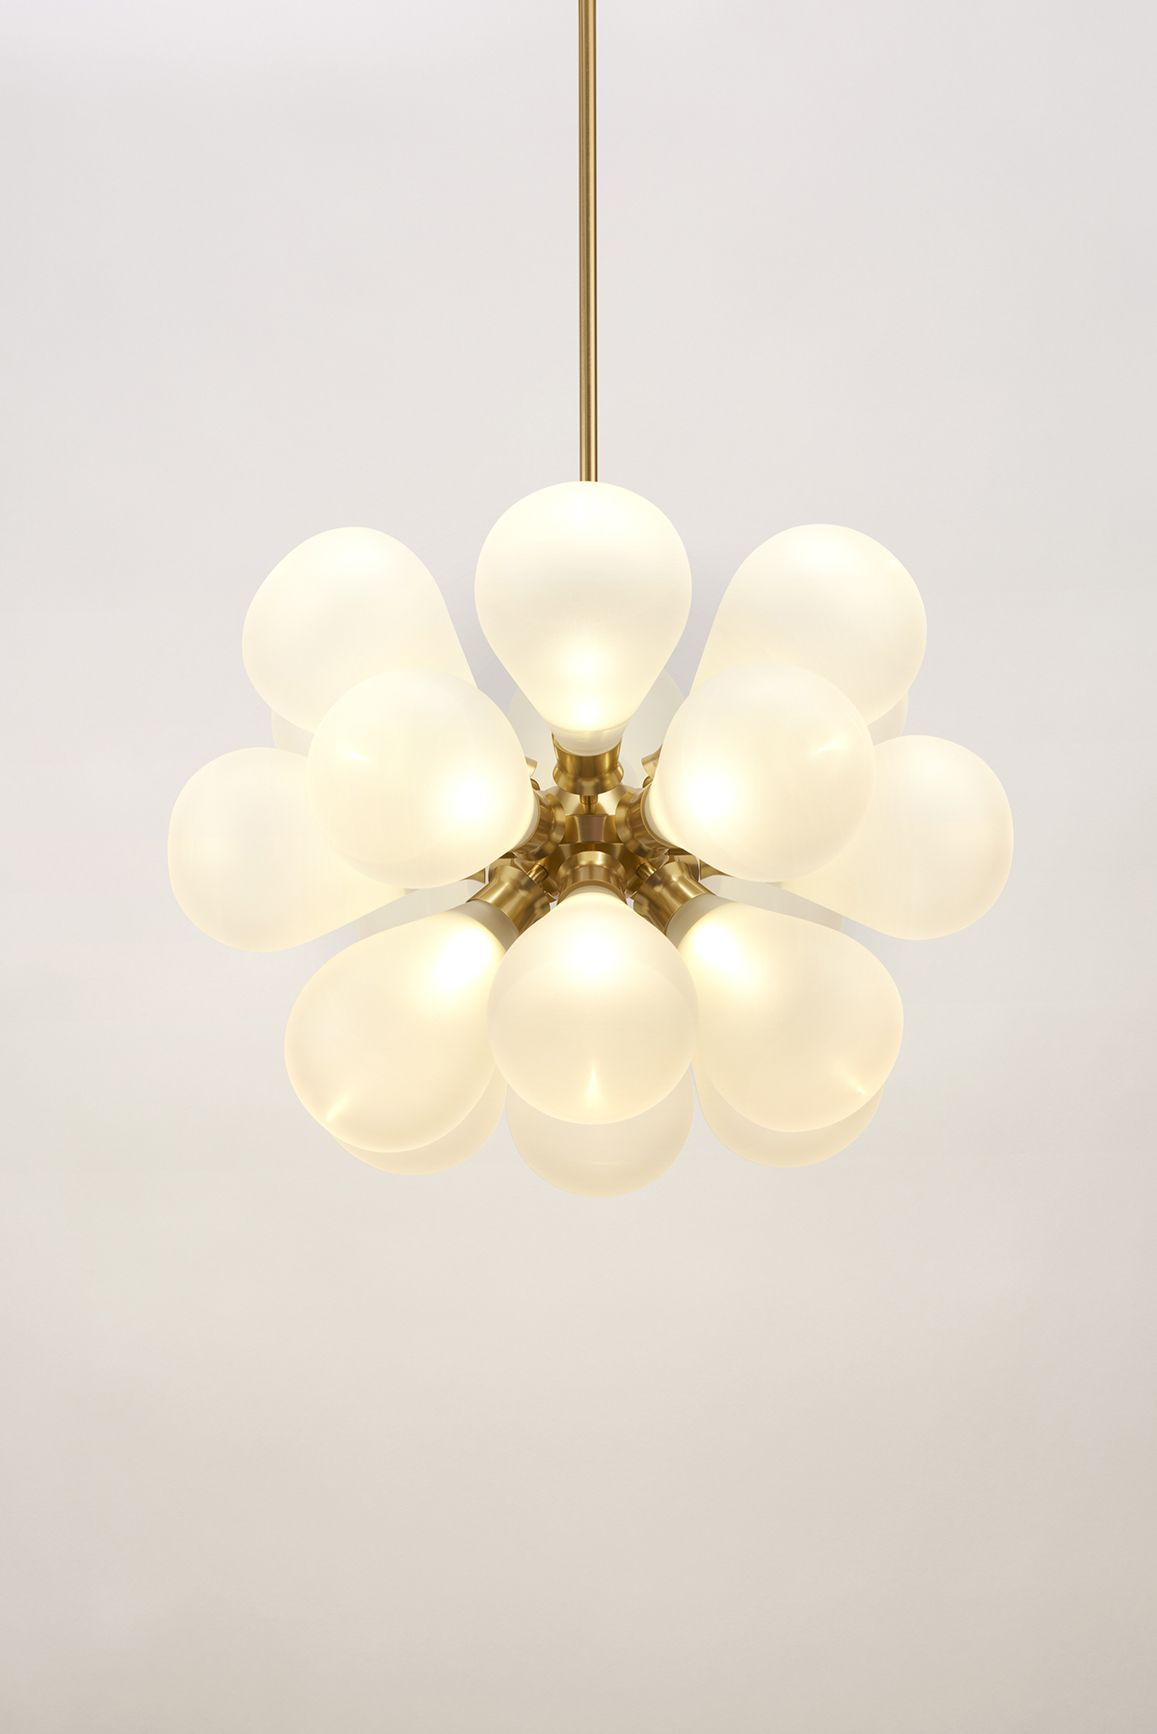 trendy lighting fixtures. Cintola Maxi Pendant | Contemporary Lighting Products Esstischleuchte Trendy Fixtures G